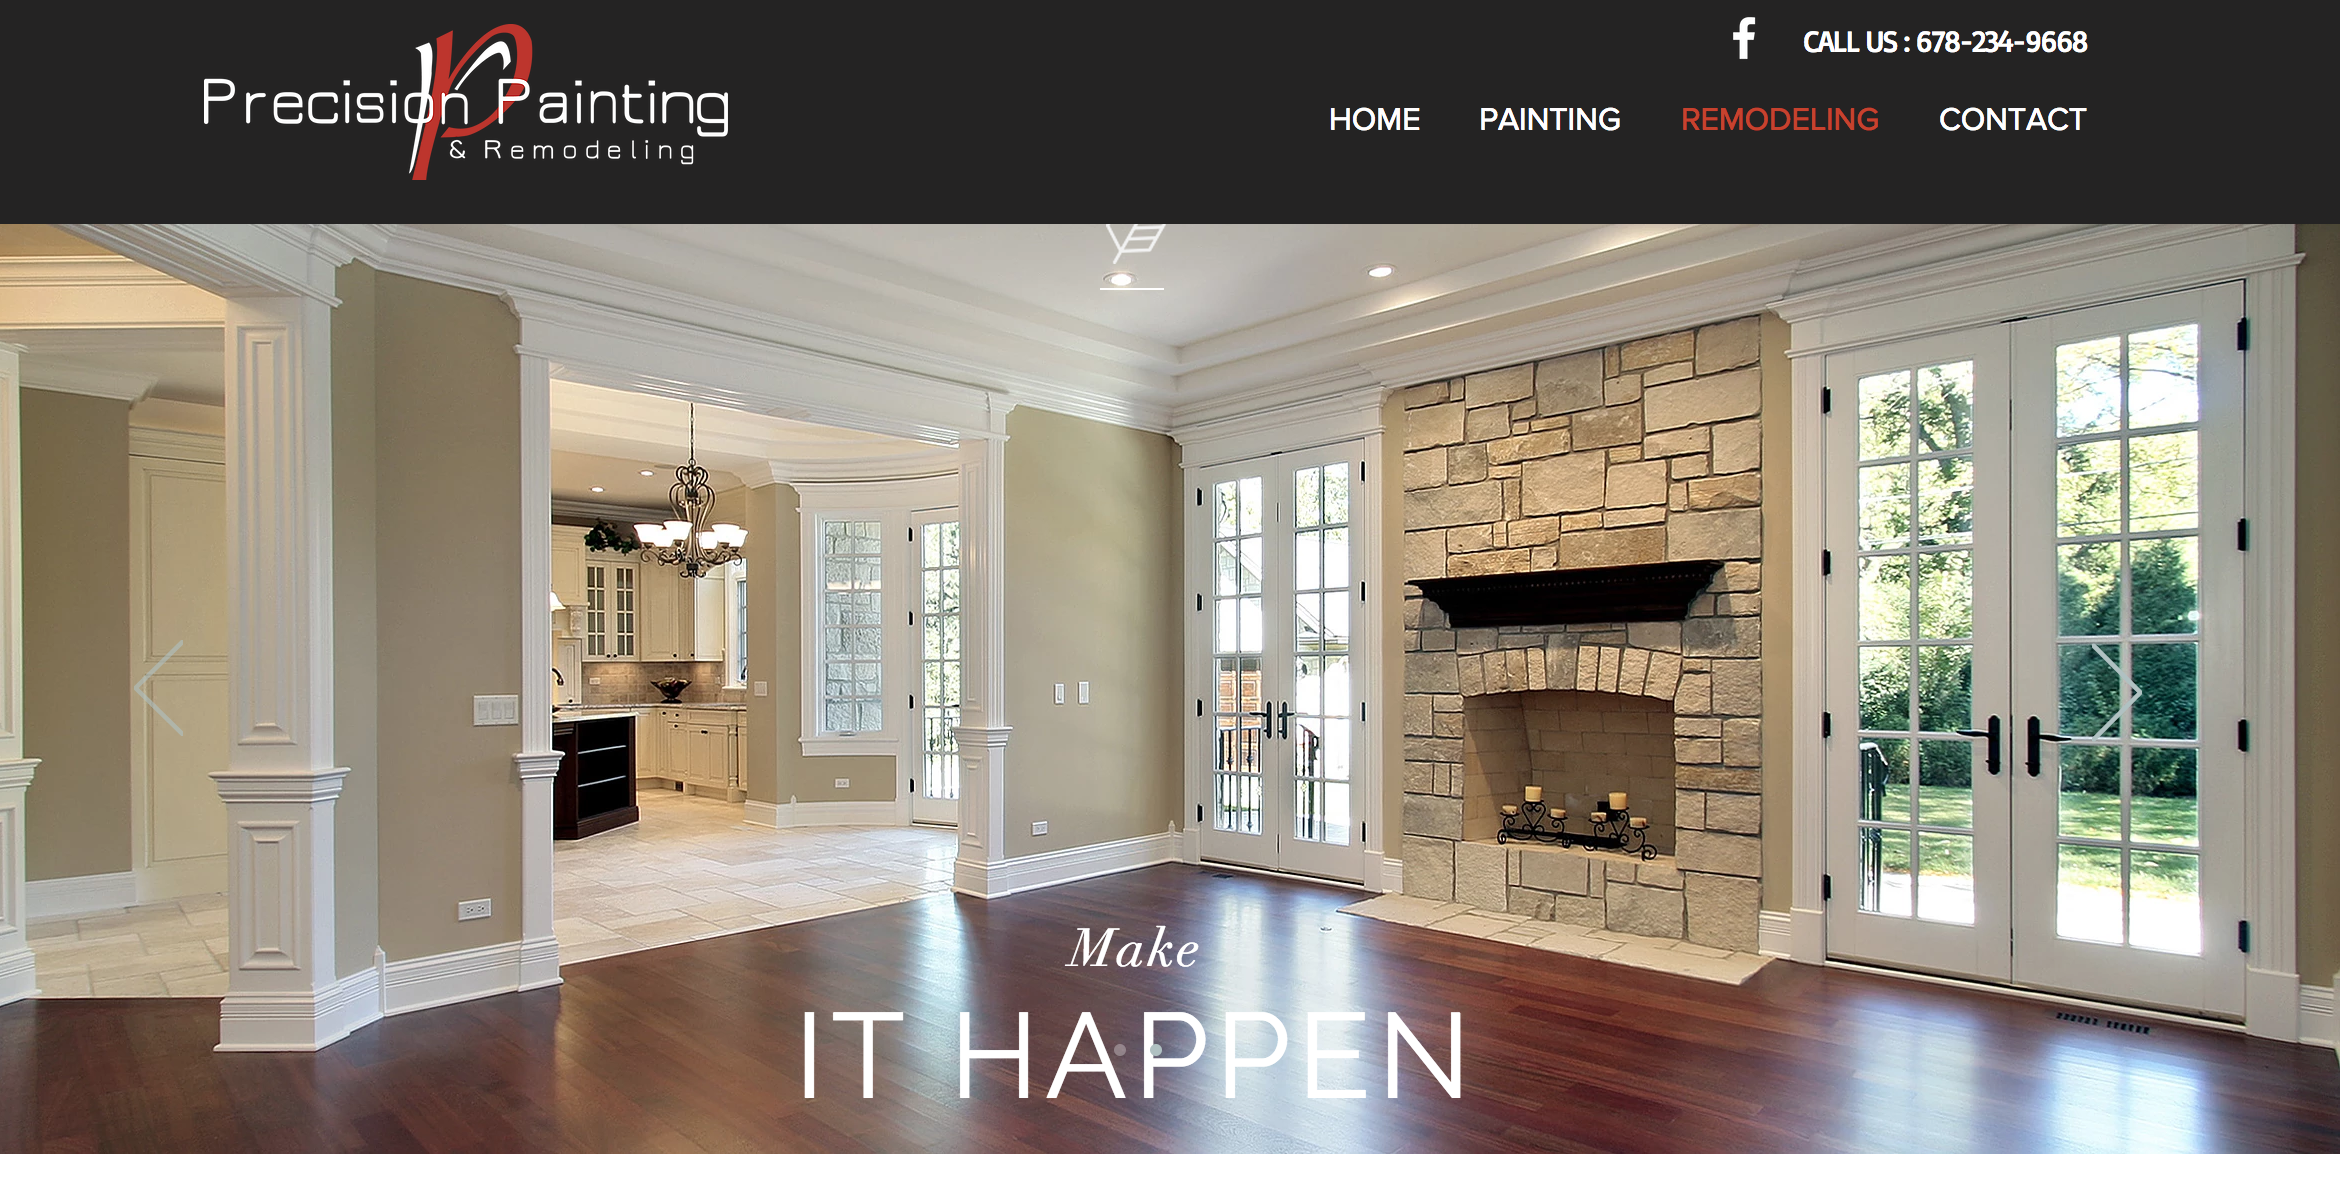 Precision Painting Website